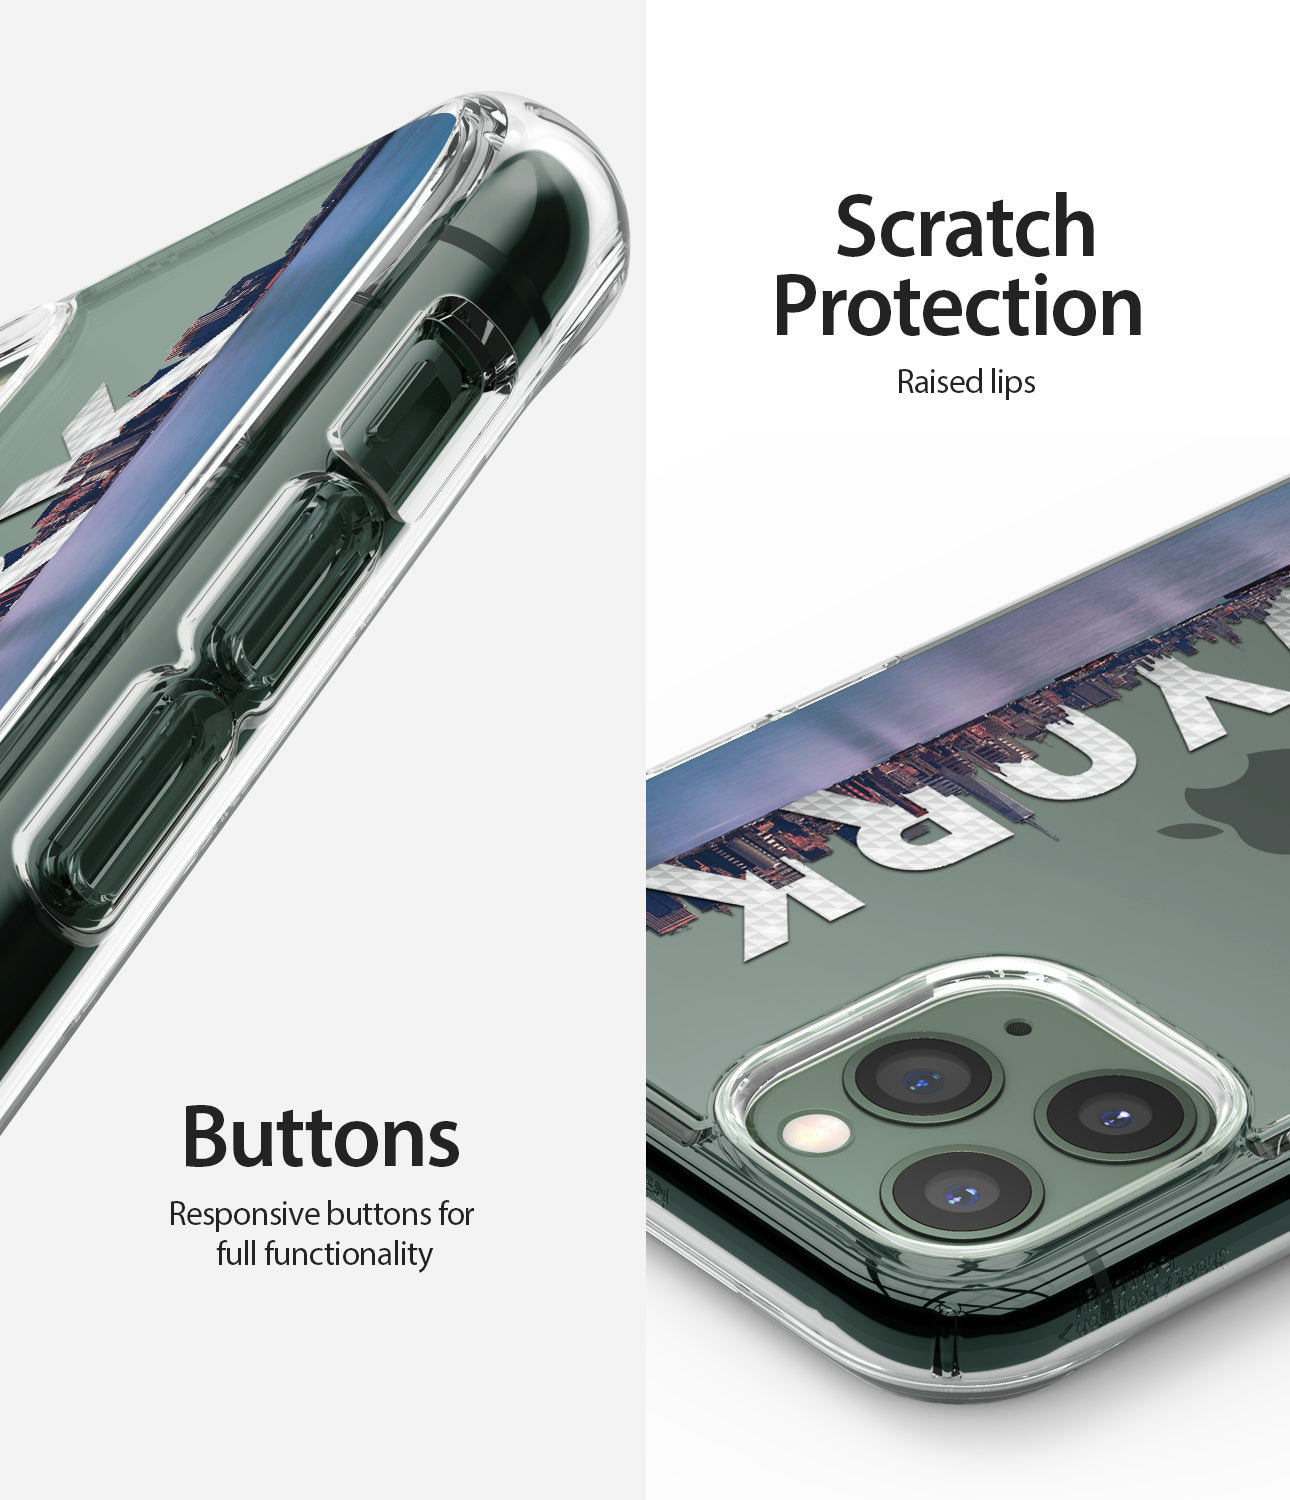 scratch protection, responsive buttons